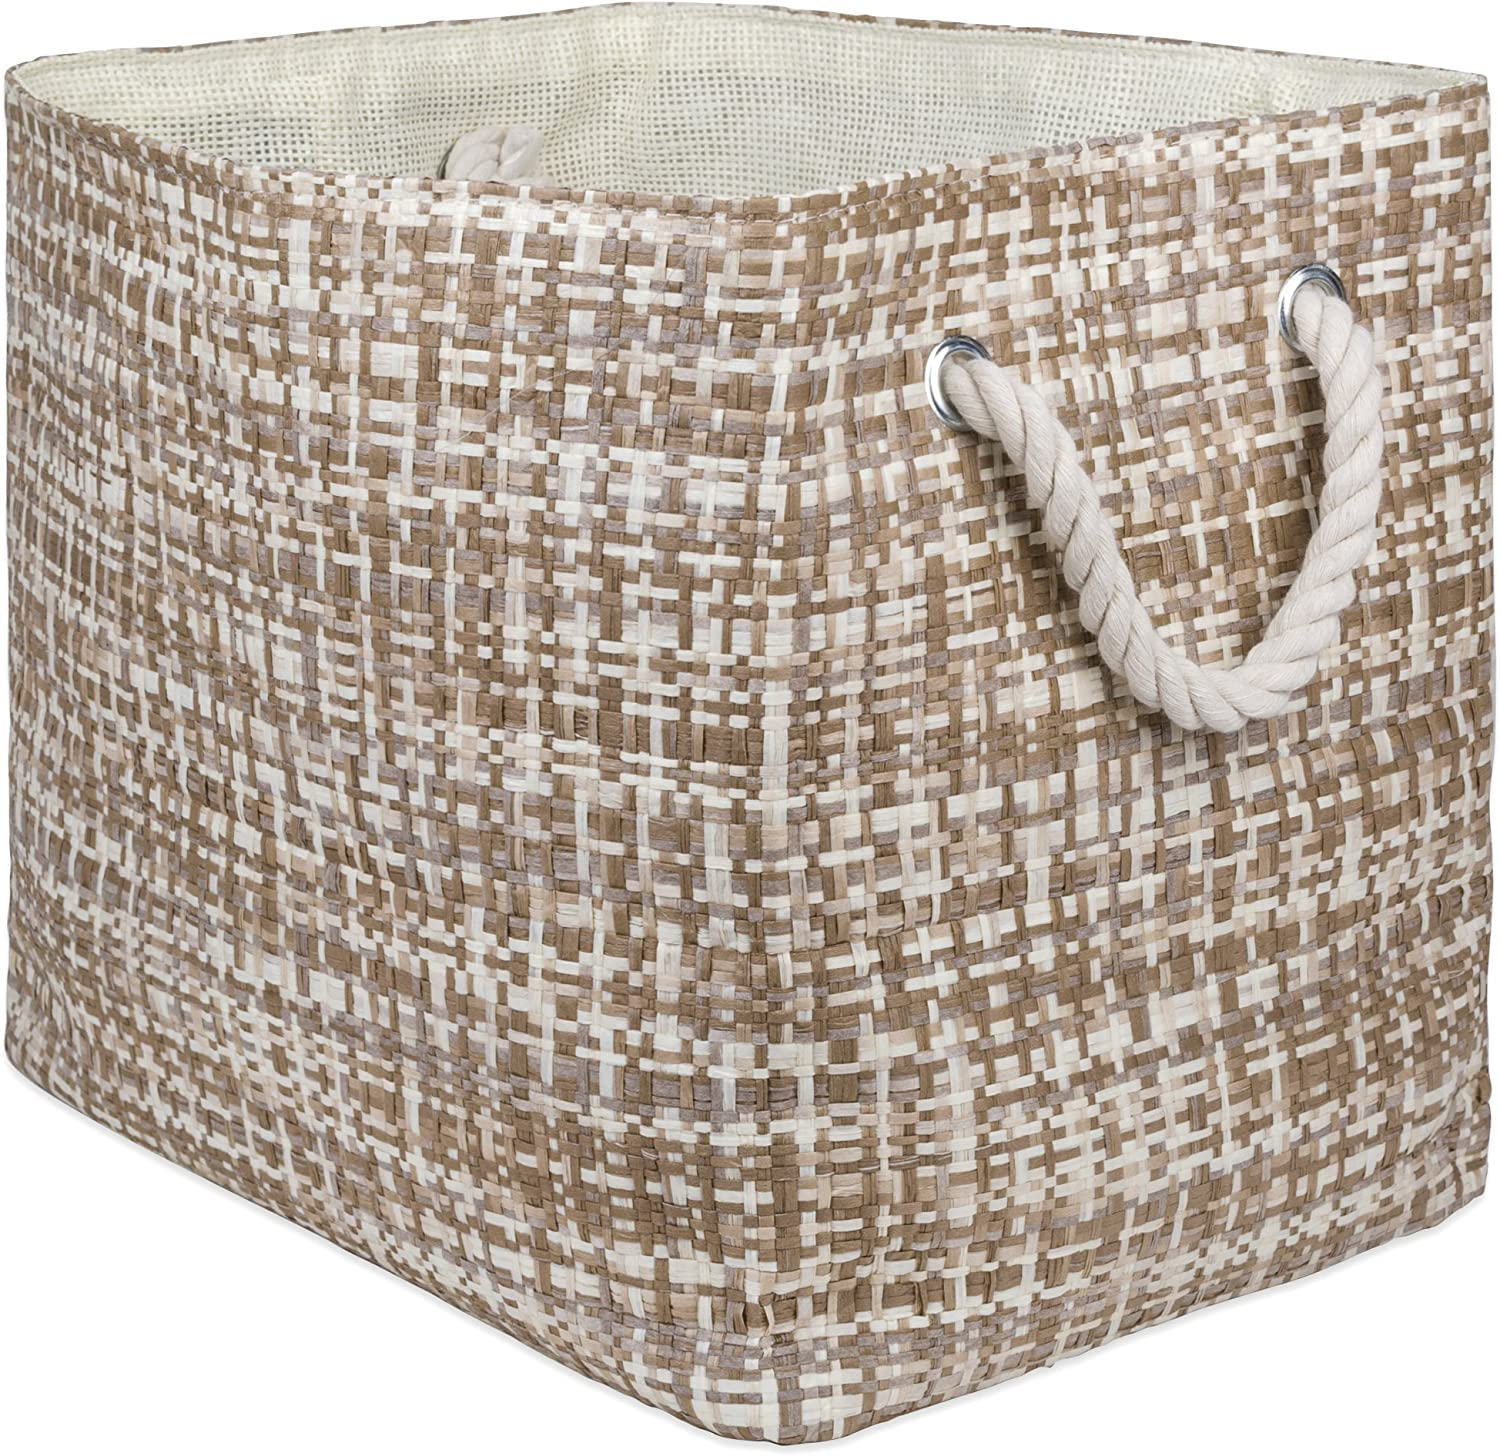 "DII Oversize Woven Paper Storage Basket or Bin, Collapsible & Convenient Home Organization Solution for Office, Bedroom, Closet, Toys, & Laundry (Large - 17x12x12""), Stone Tweed"